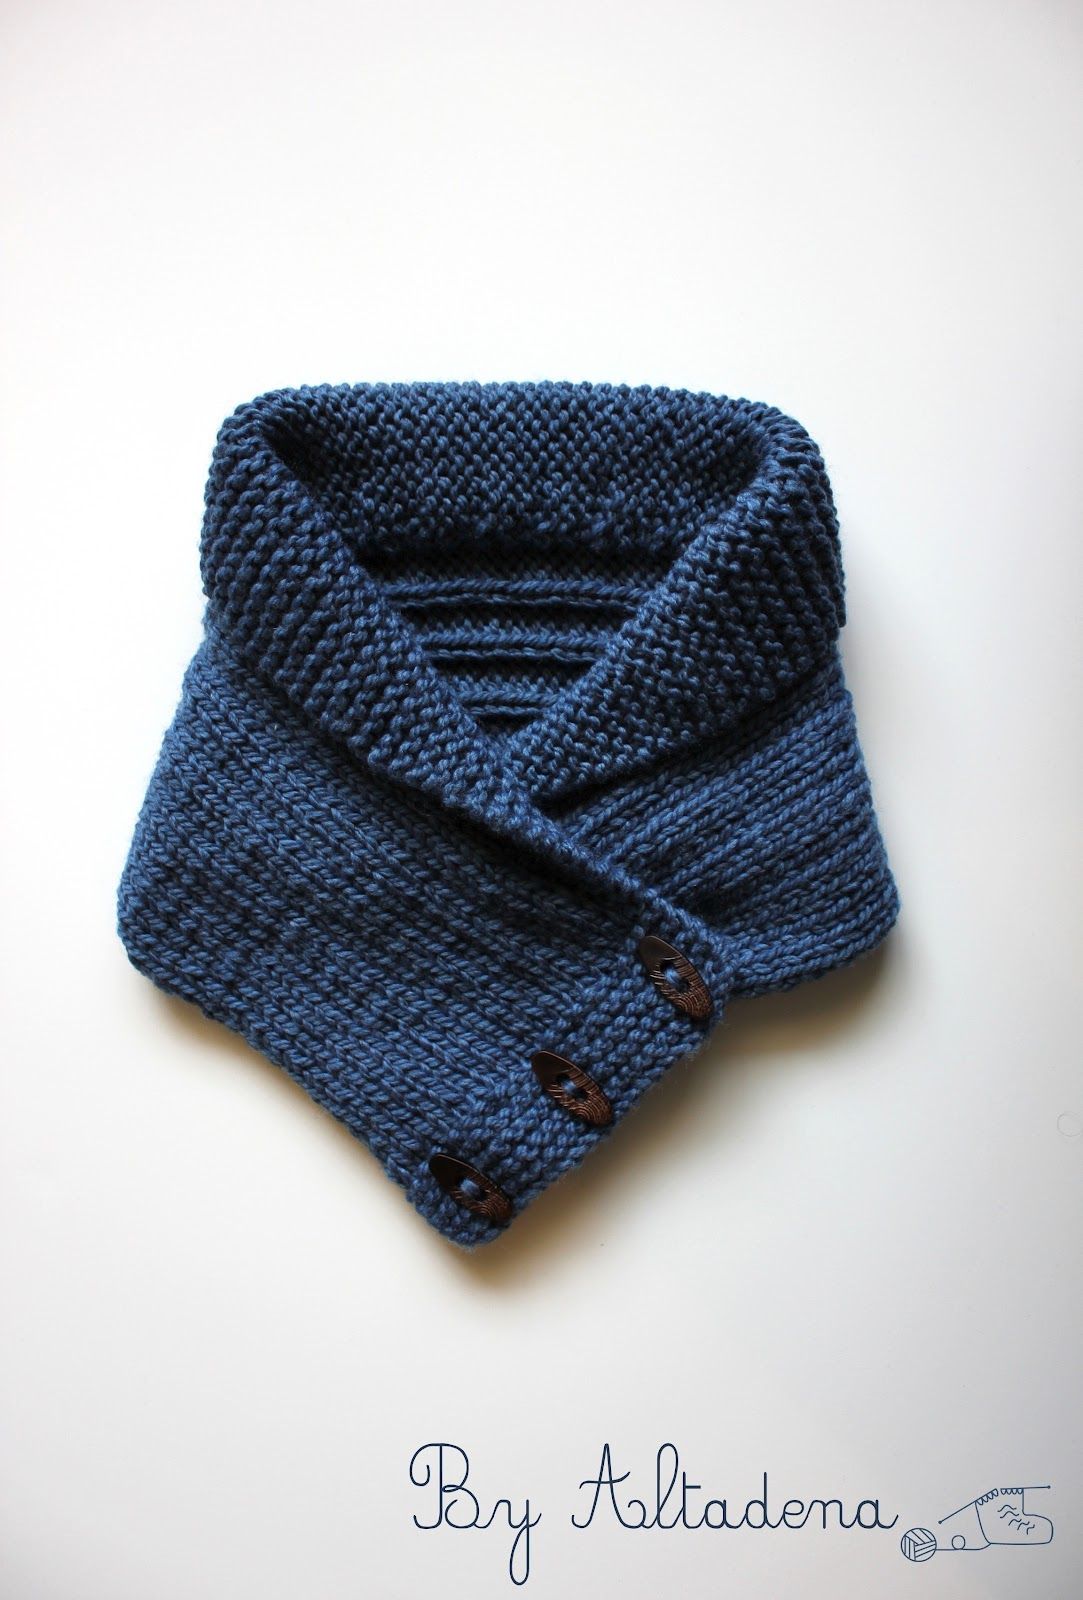 Altadena's baby designs: So sweet to knit for a friend